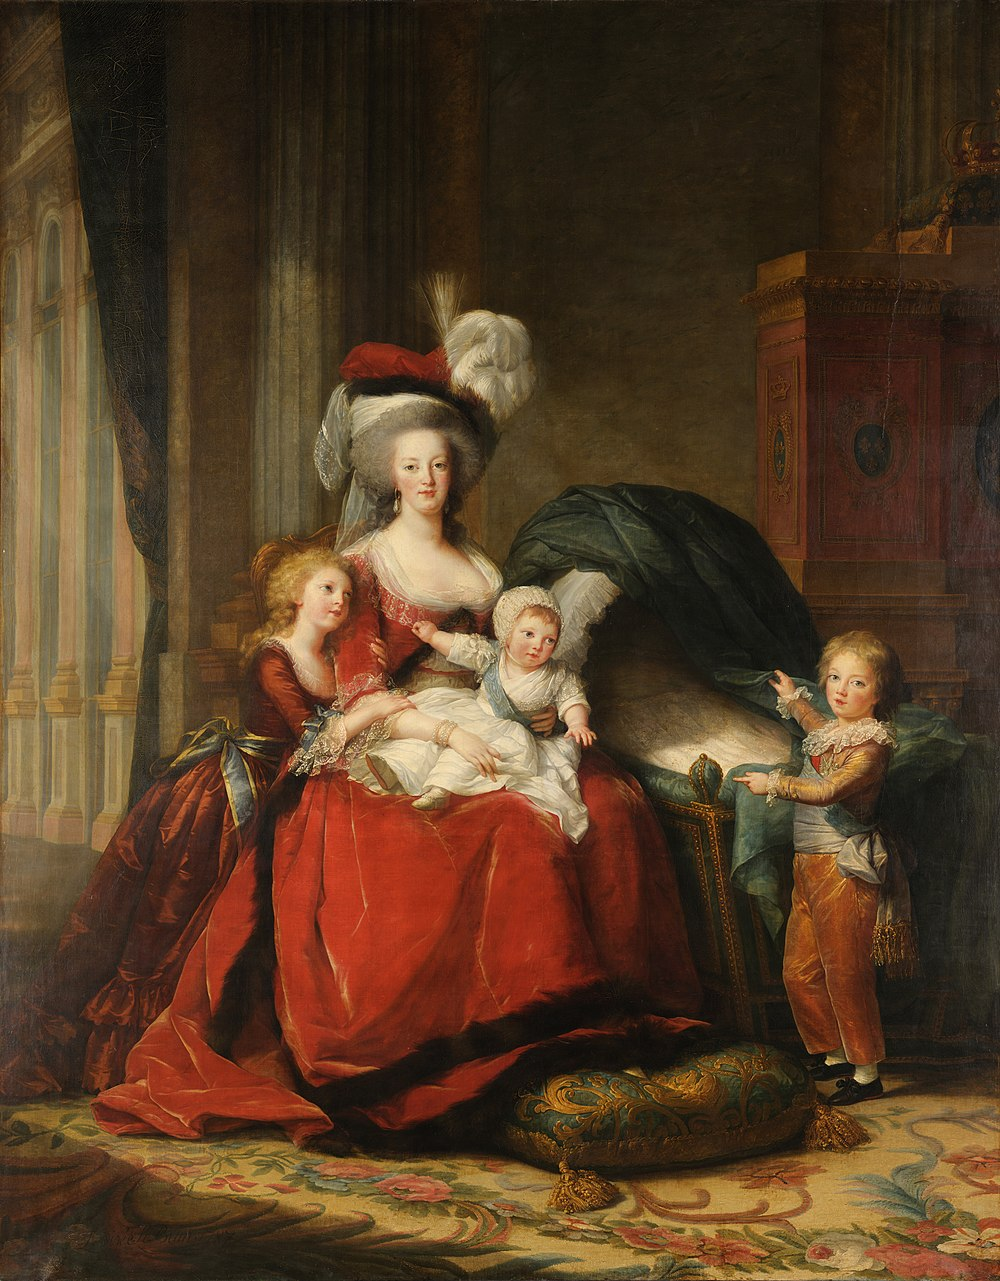 Queen Marie Antoinette with her children, 1787 at Versailles; (L-R); Marie Therese Charlotte, known as Madame Royale at court; the Queen with the Duke of Normandy on her lap; the Dauphin is on the right pointing into an empty cradle; the cradle used to show Madame Sophie; she died later in the year and had to be painted out; by Elisabeth-Louise Vigee-Le Brun; the Fleur-de-lis of France and the Bourbons can be seen behind on the cabinet Louise Elisabeth Vigee-Lebrun - Marie-Antoinette de Lorraine-Habsbourg, reine de France et ses enfants - Google Art Project.jpg